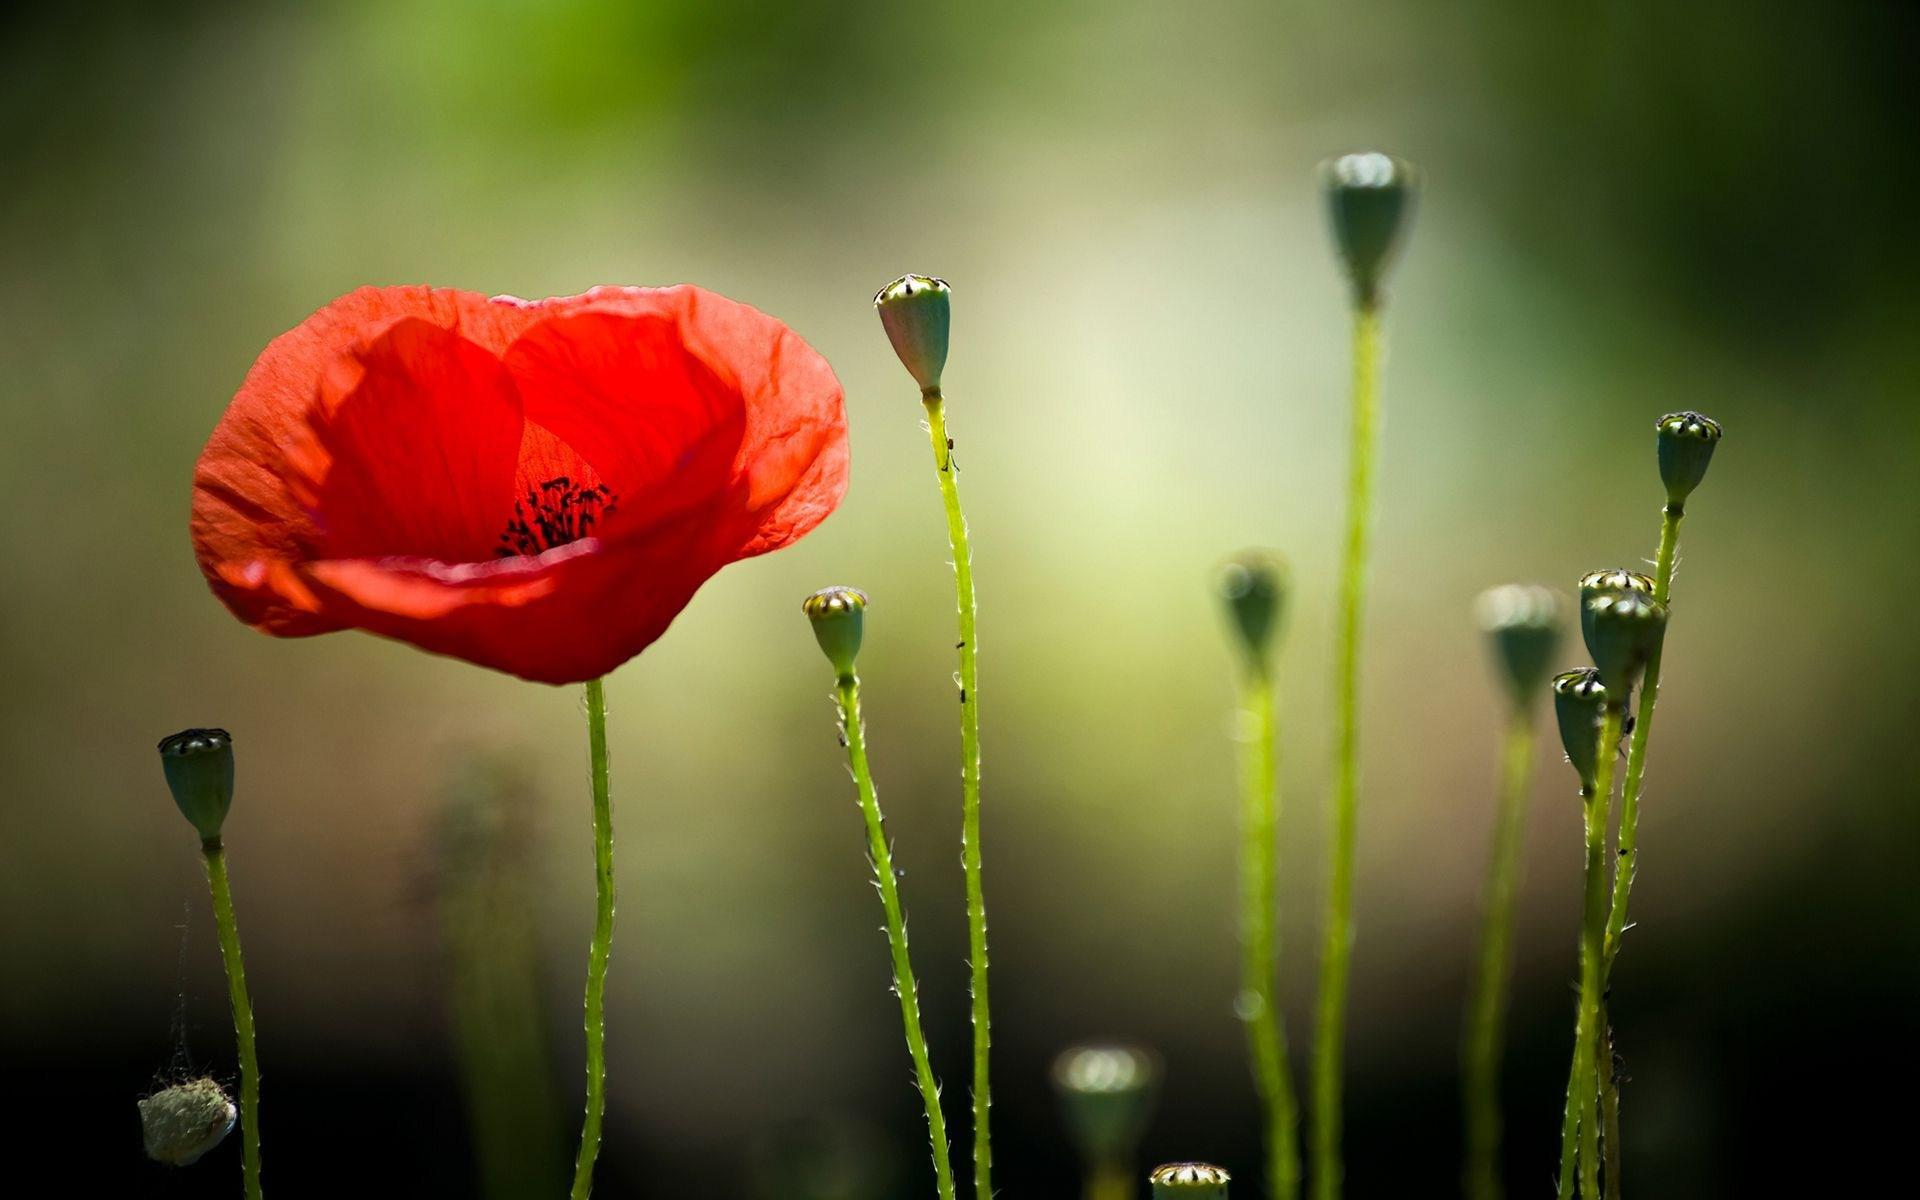 Good Night 3d Moving Wallpaper Hd Poppy Hd Wallpaper Download Free 138681